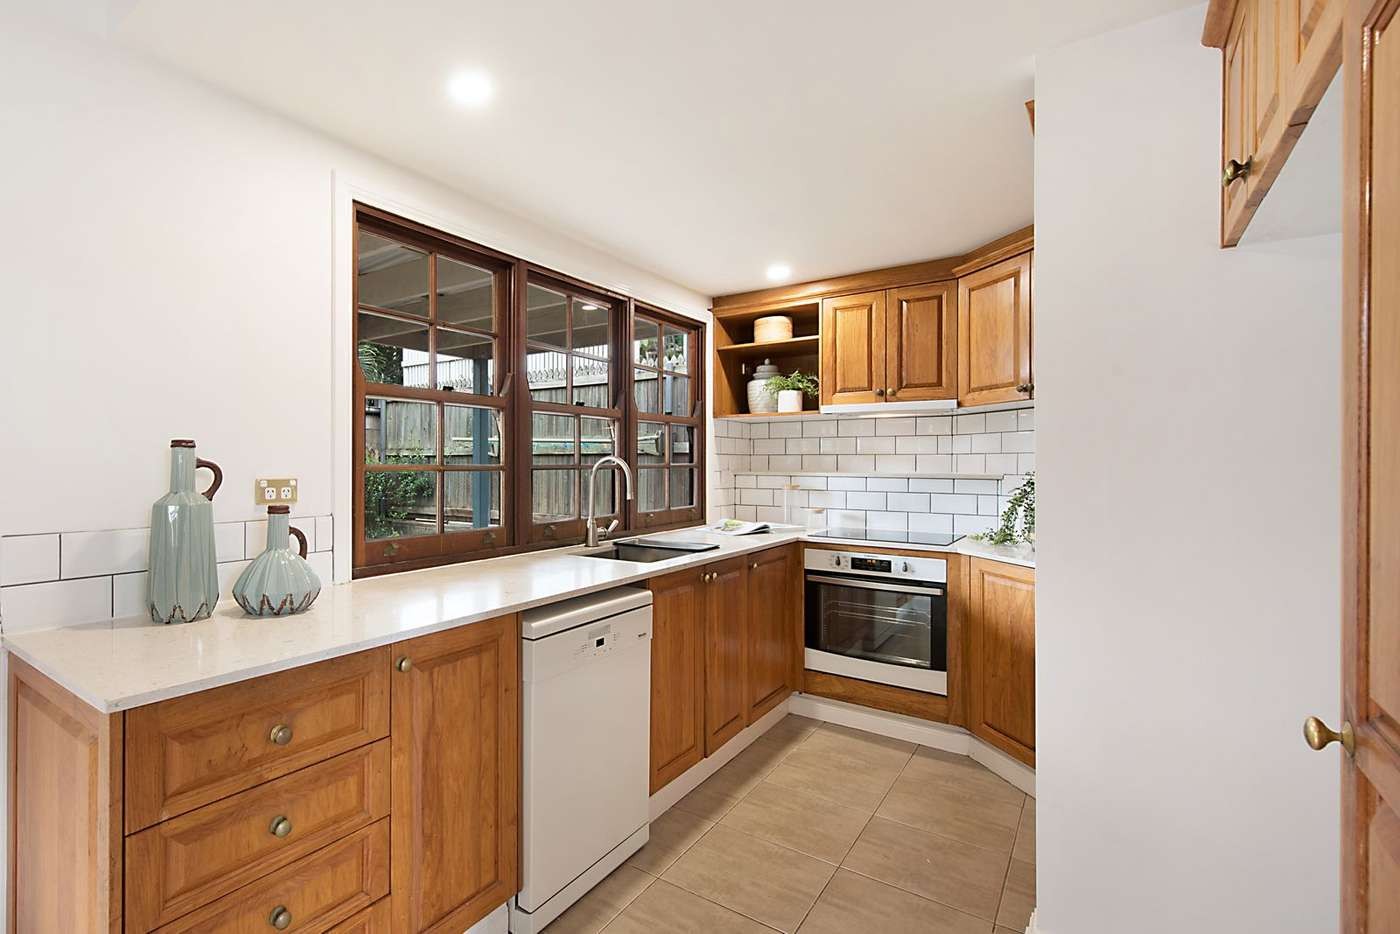 Fifth view of Homely house listing, 27 Sexton Street, Petrie Terrace QLD 4000